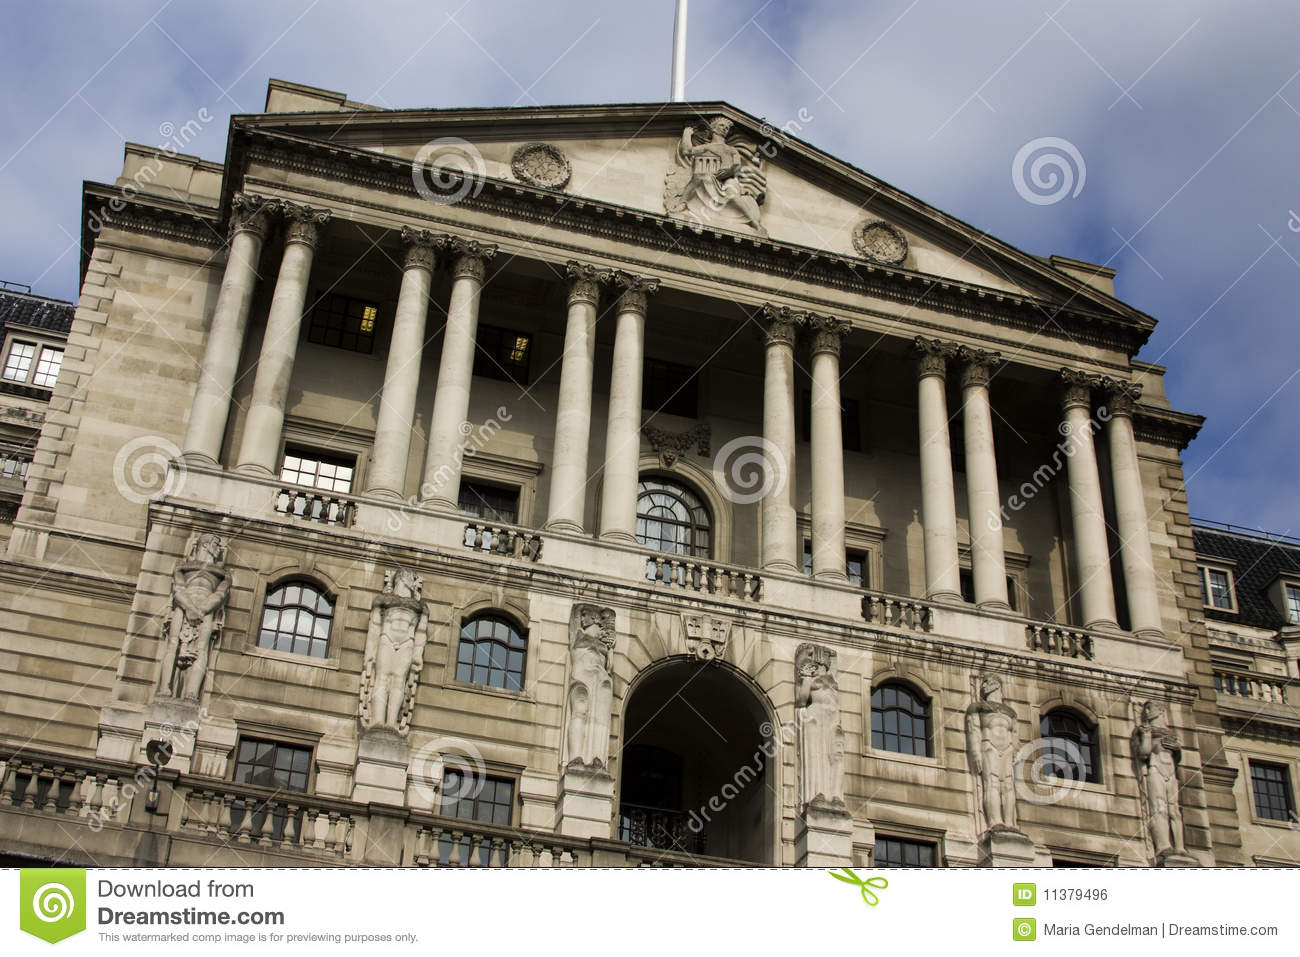 bank of england building royalty free stock image